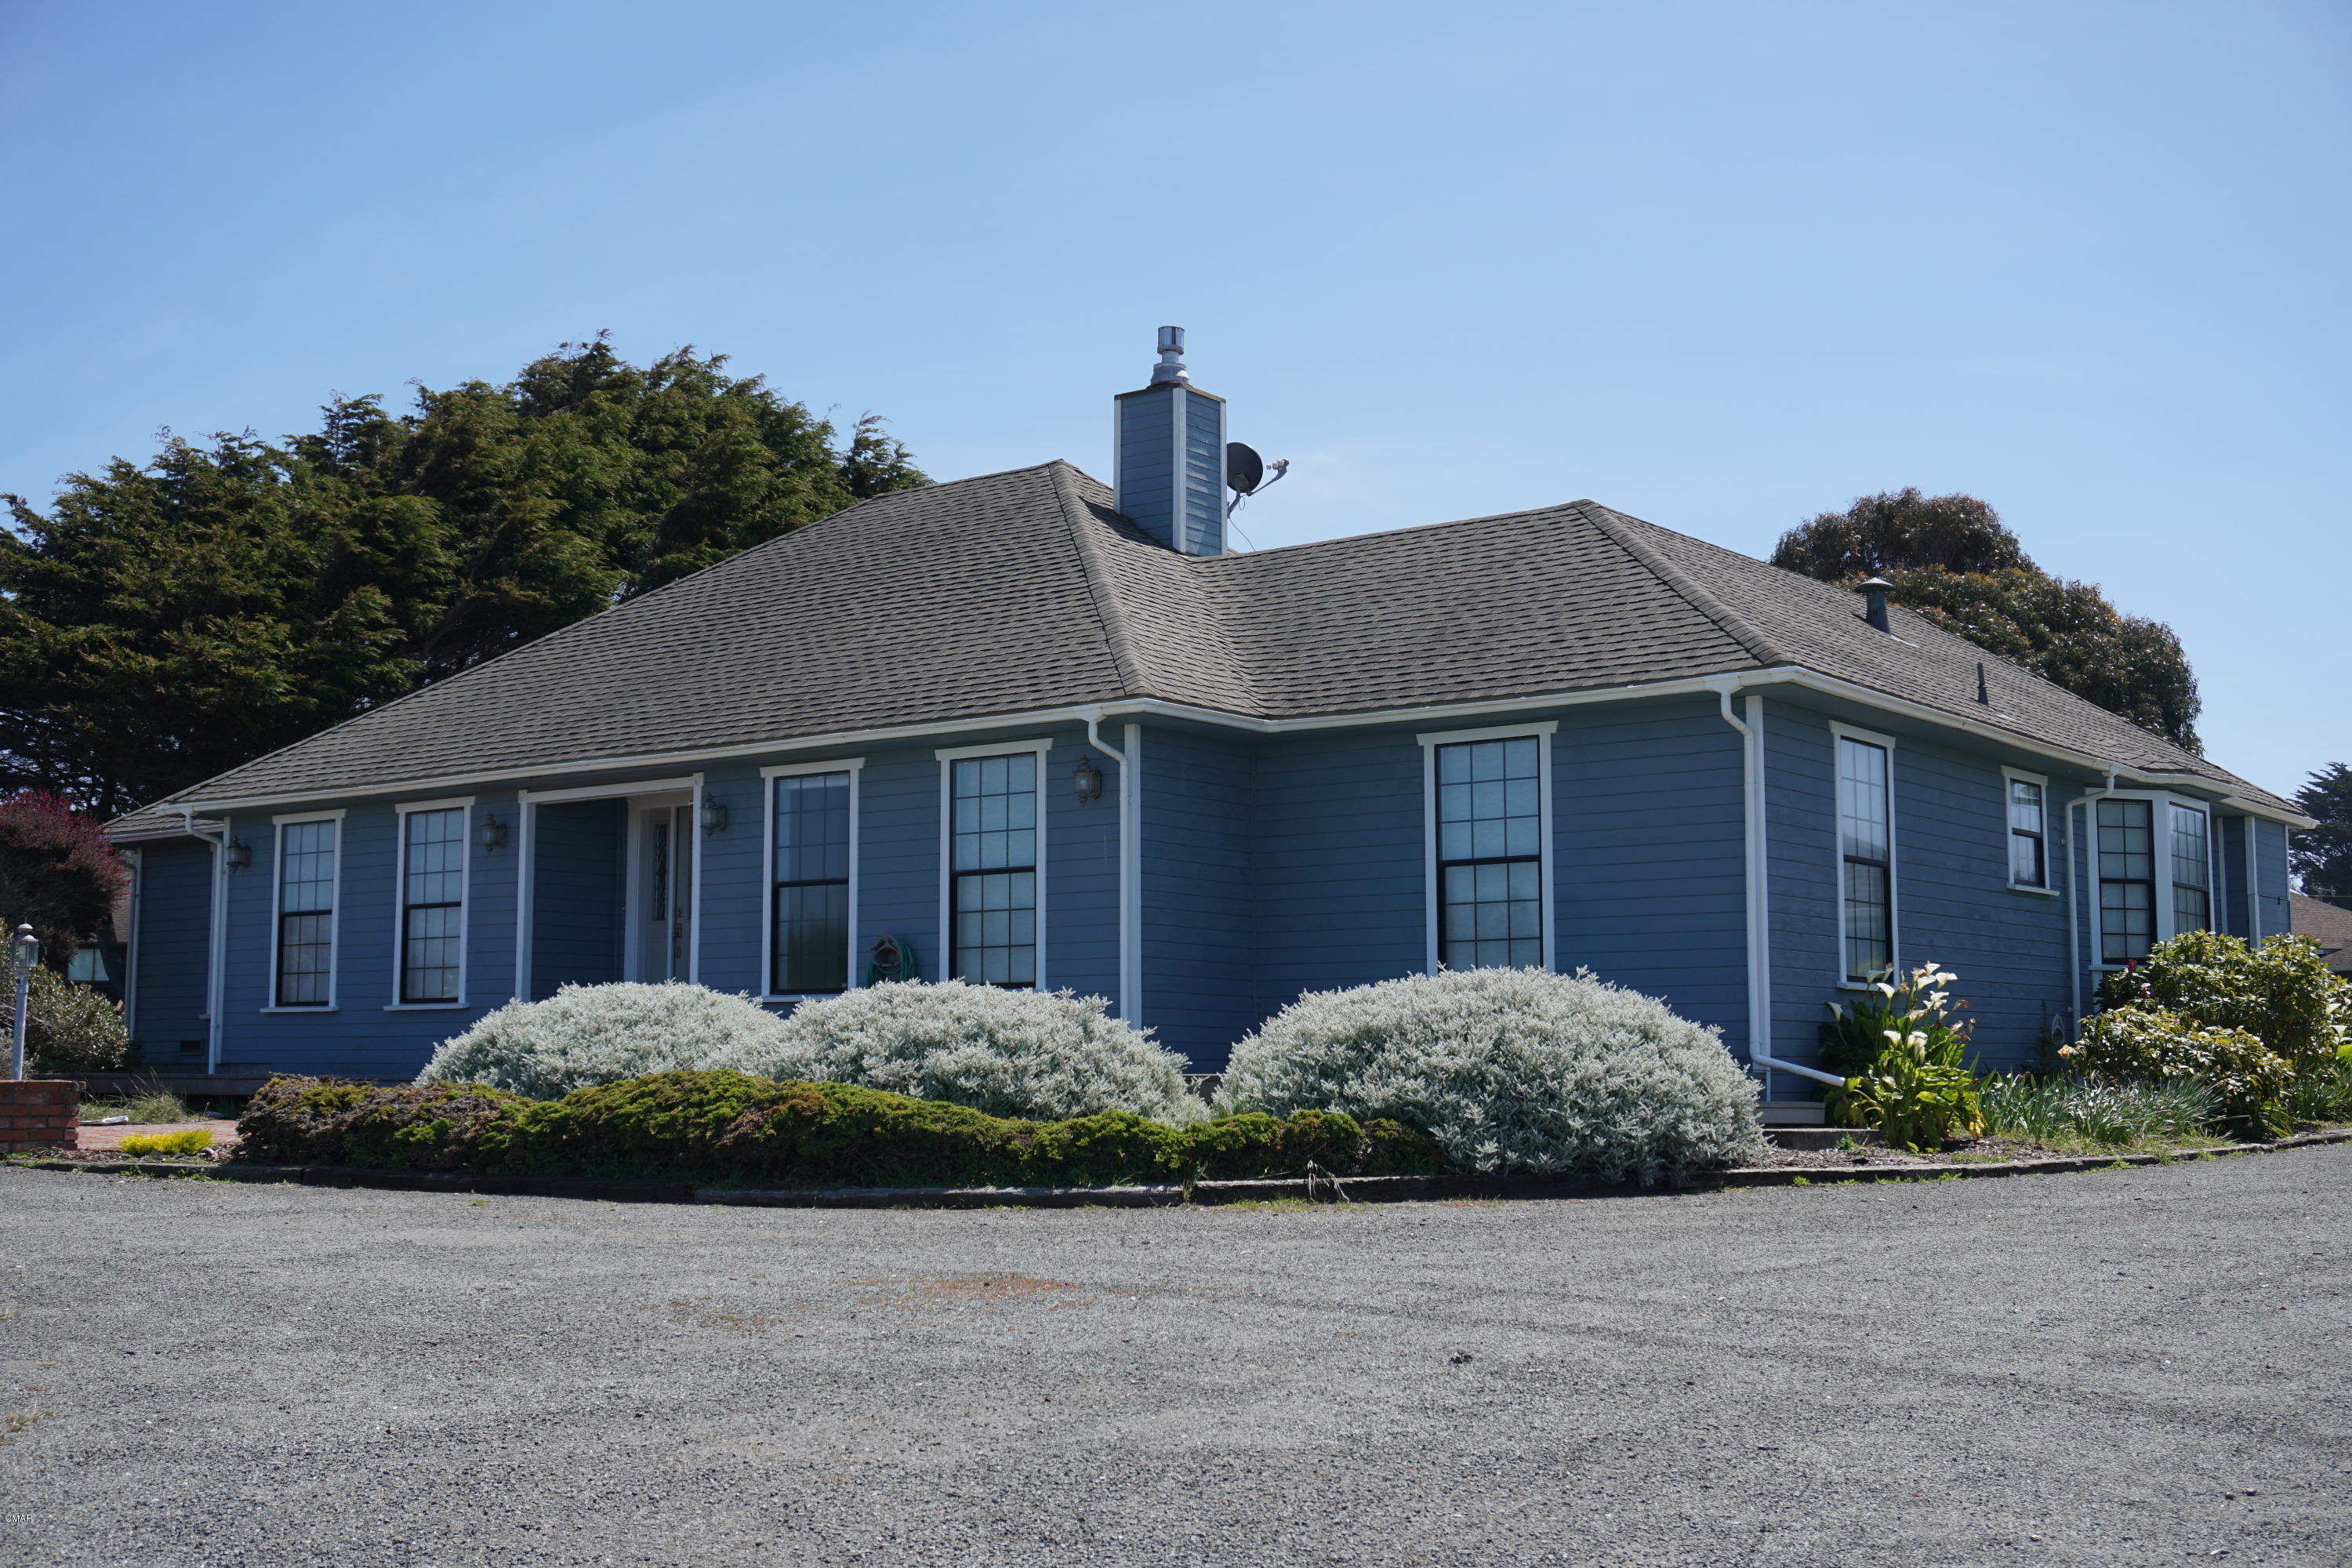 Single Family Home for Sale at 34451 Sunset Way Fort Bragg, California 95437 United States